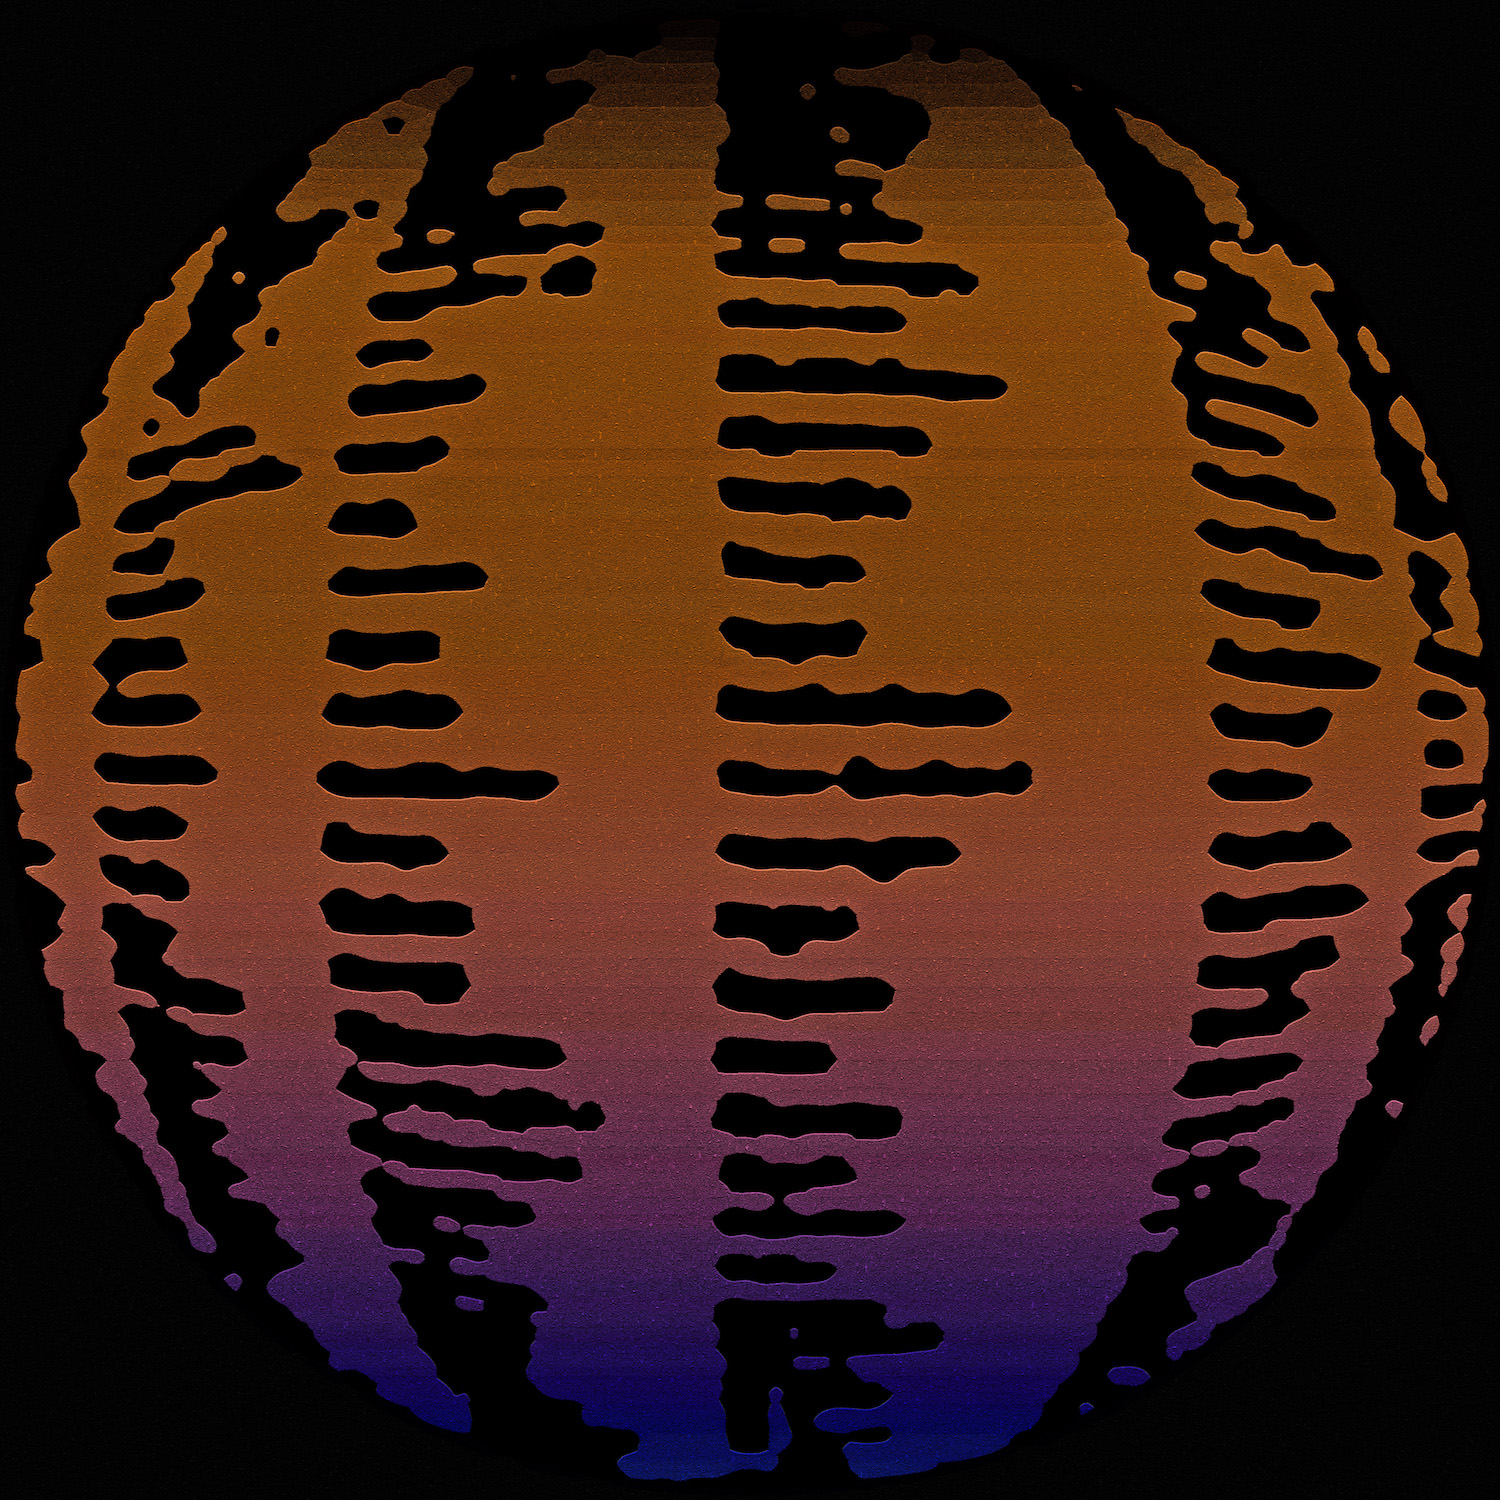 Dec16 final orangegold palette lighter  mosaic participating countries words inverted sphere 30x30 no filter.jpg copy.jpg